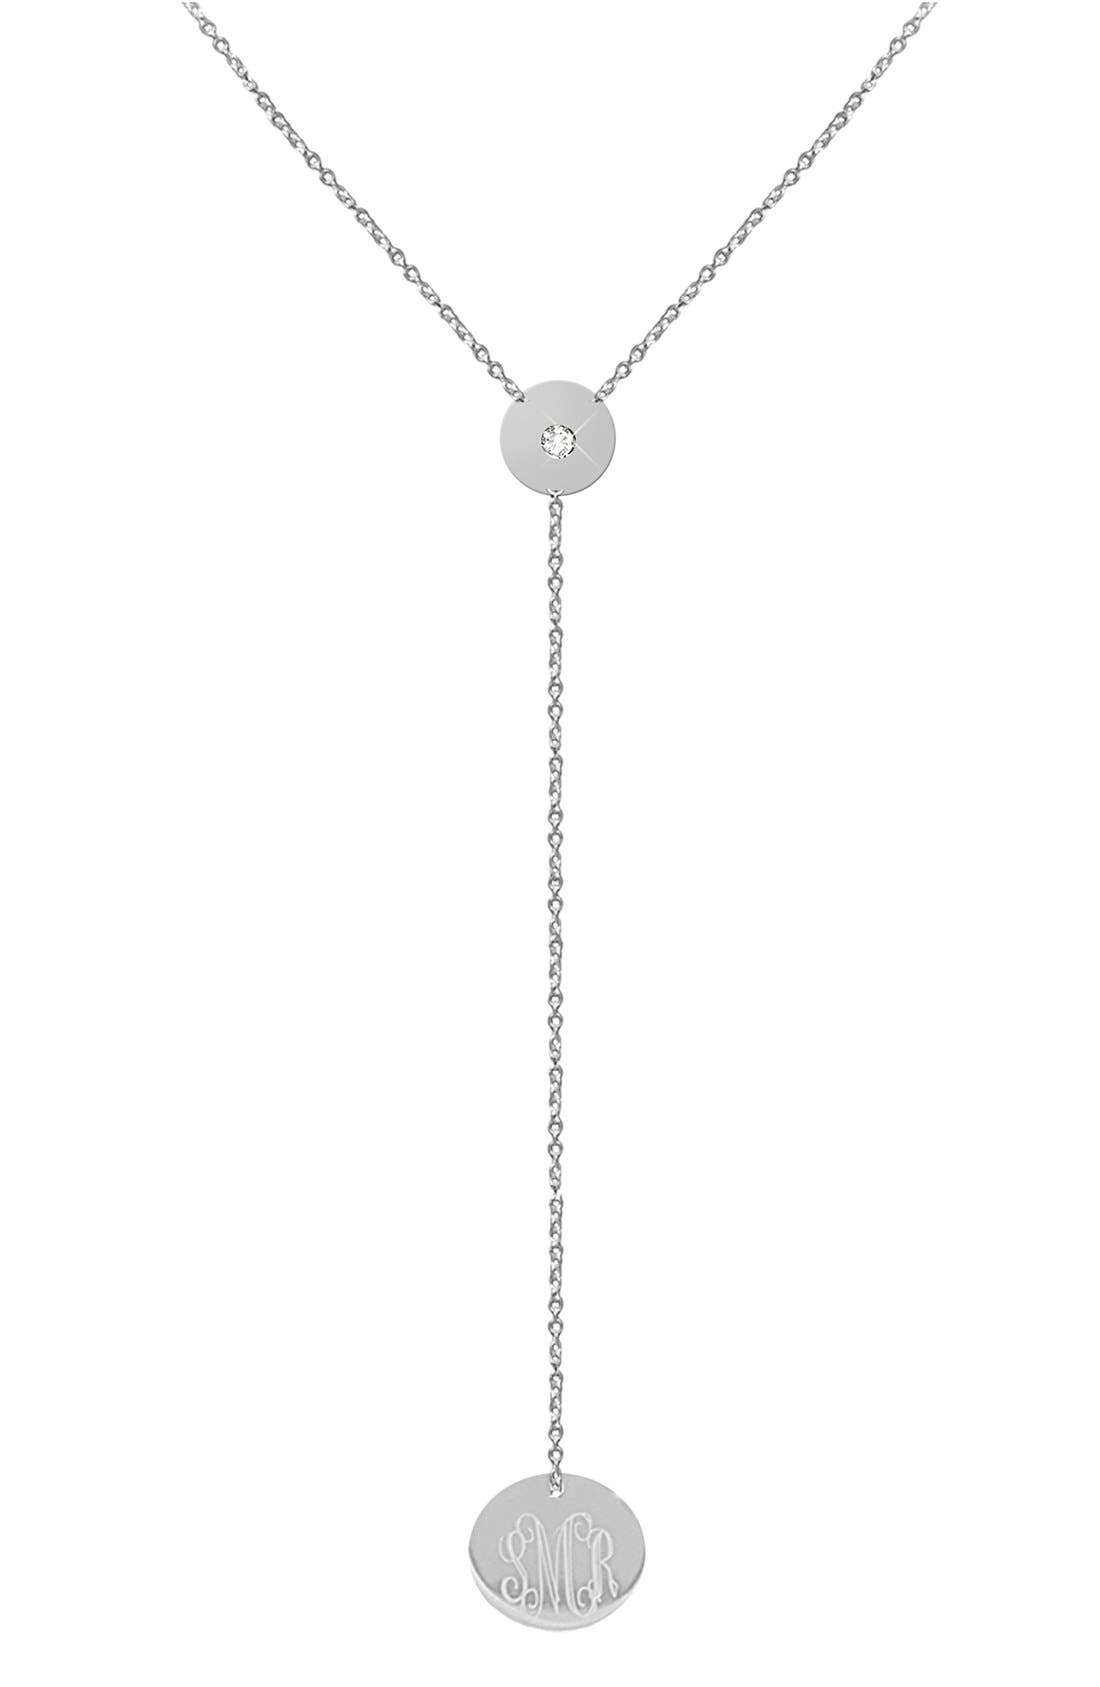 Main Image - Jane Basch Designs Diamond & Personalized Monogram Y-Necklace (Nordstrom Online Exclusive)